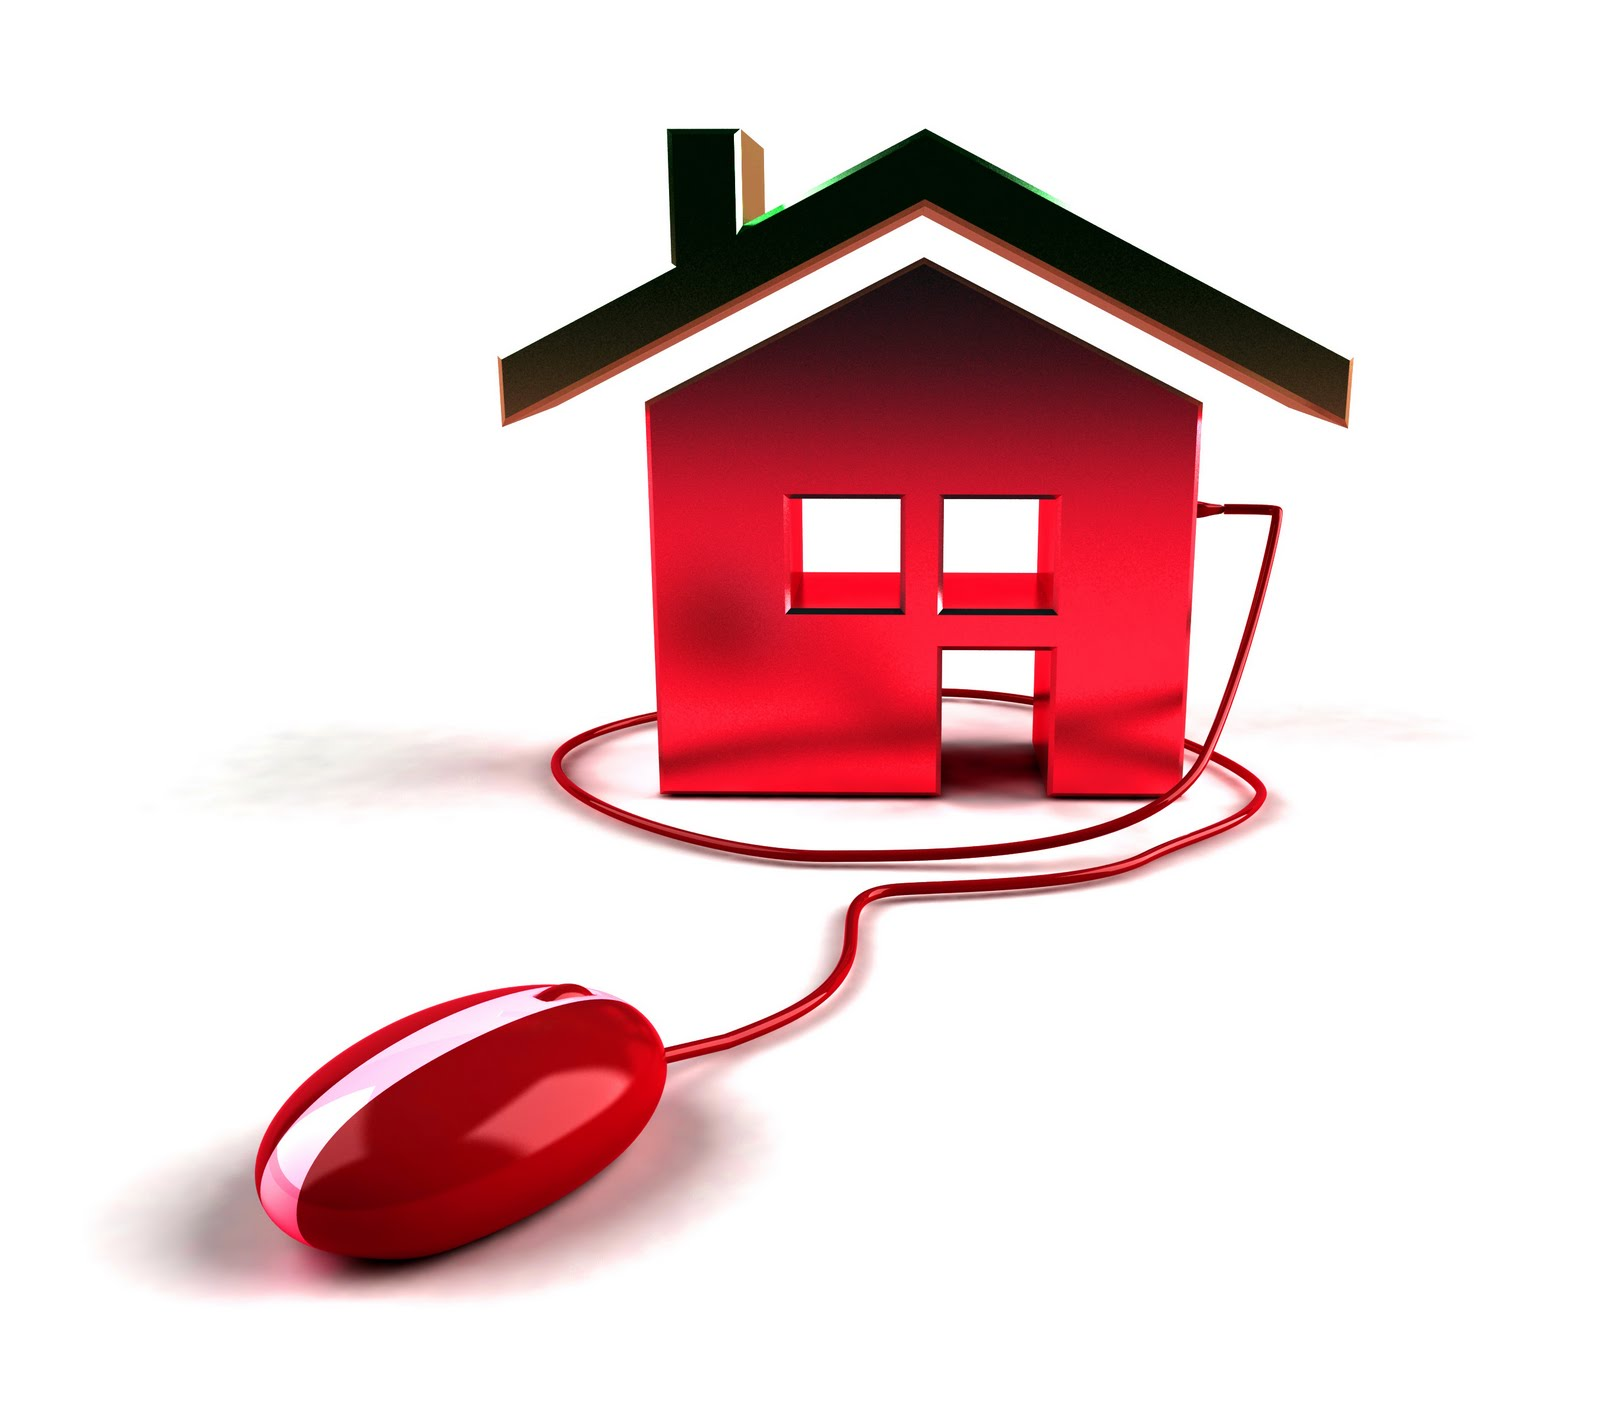 Real estate clipart sale consultant. Building realty trend online